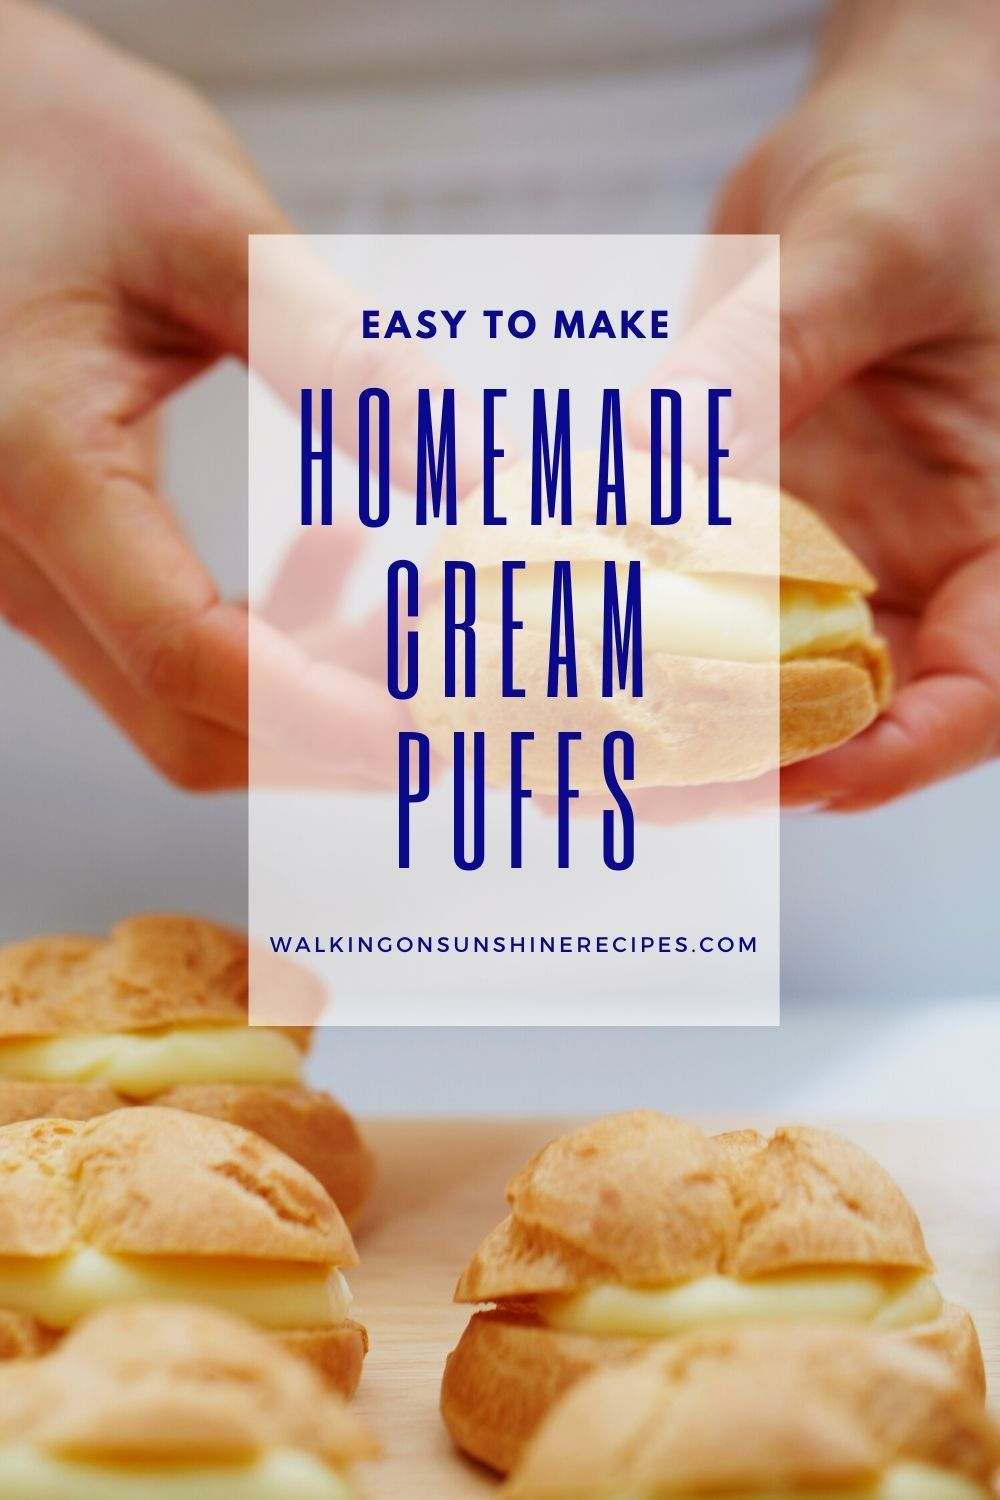 Girl holding homemade cream puffs in hands showing how easy they are to make.